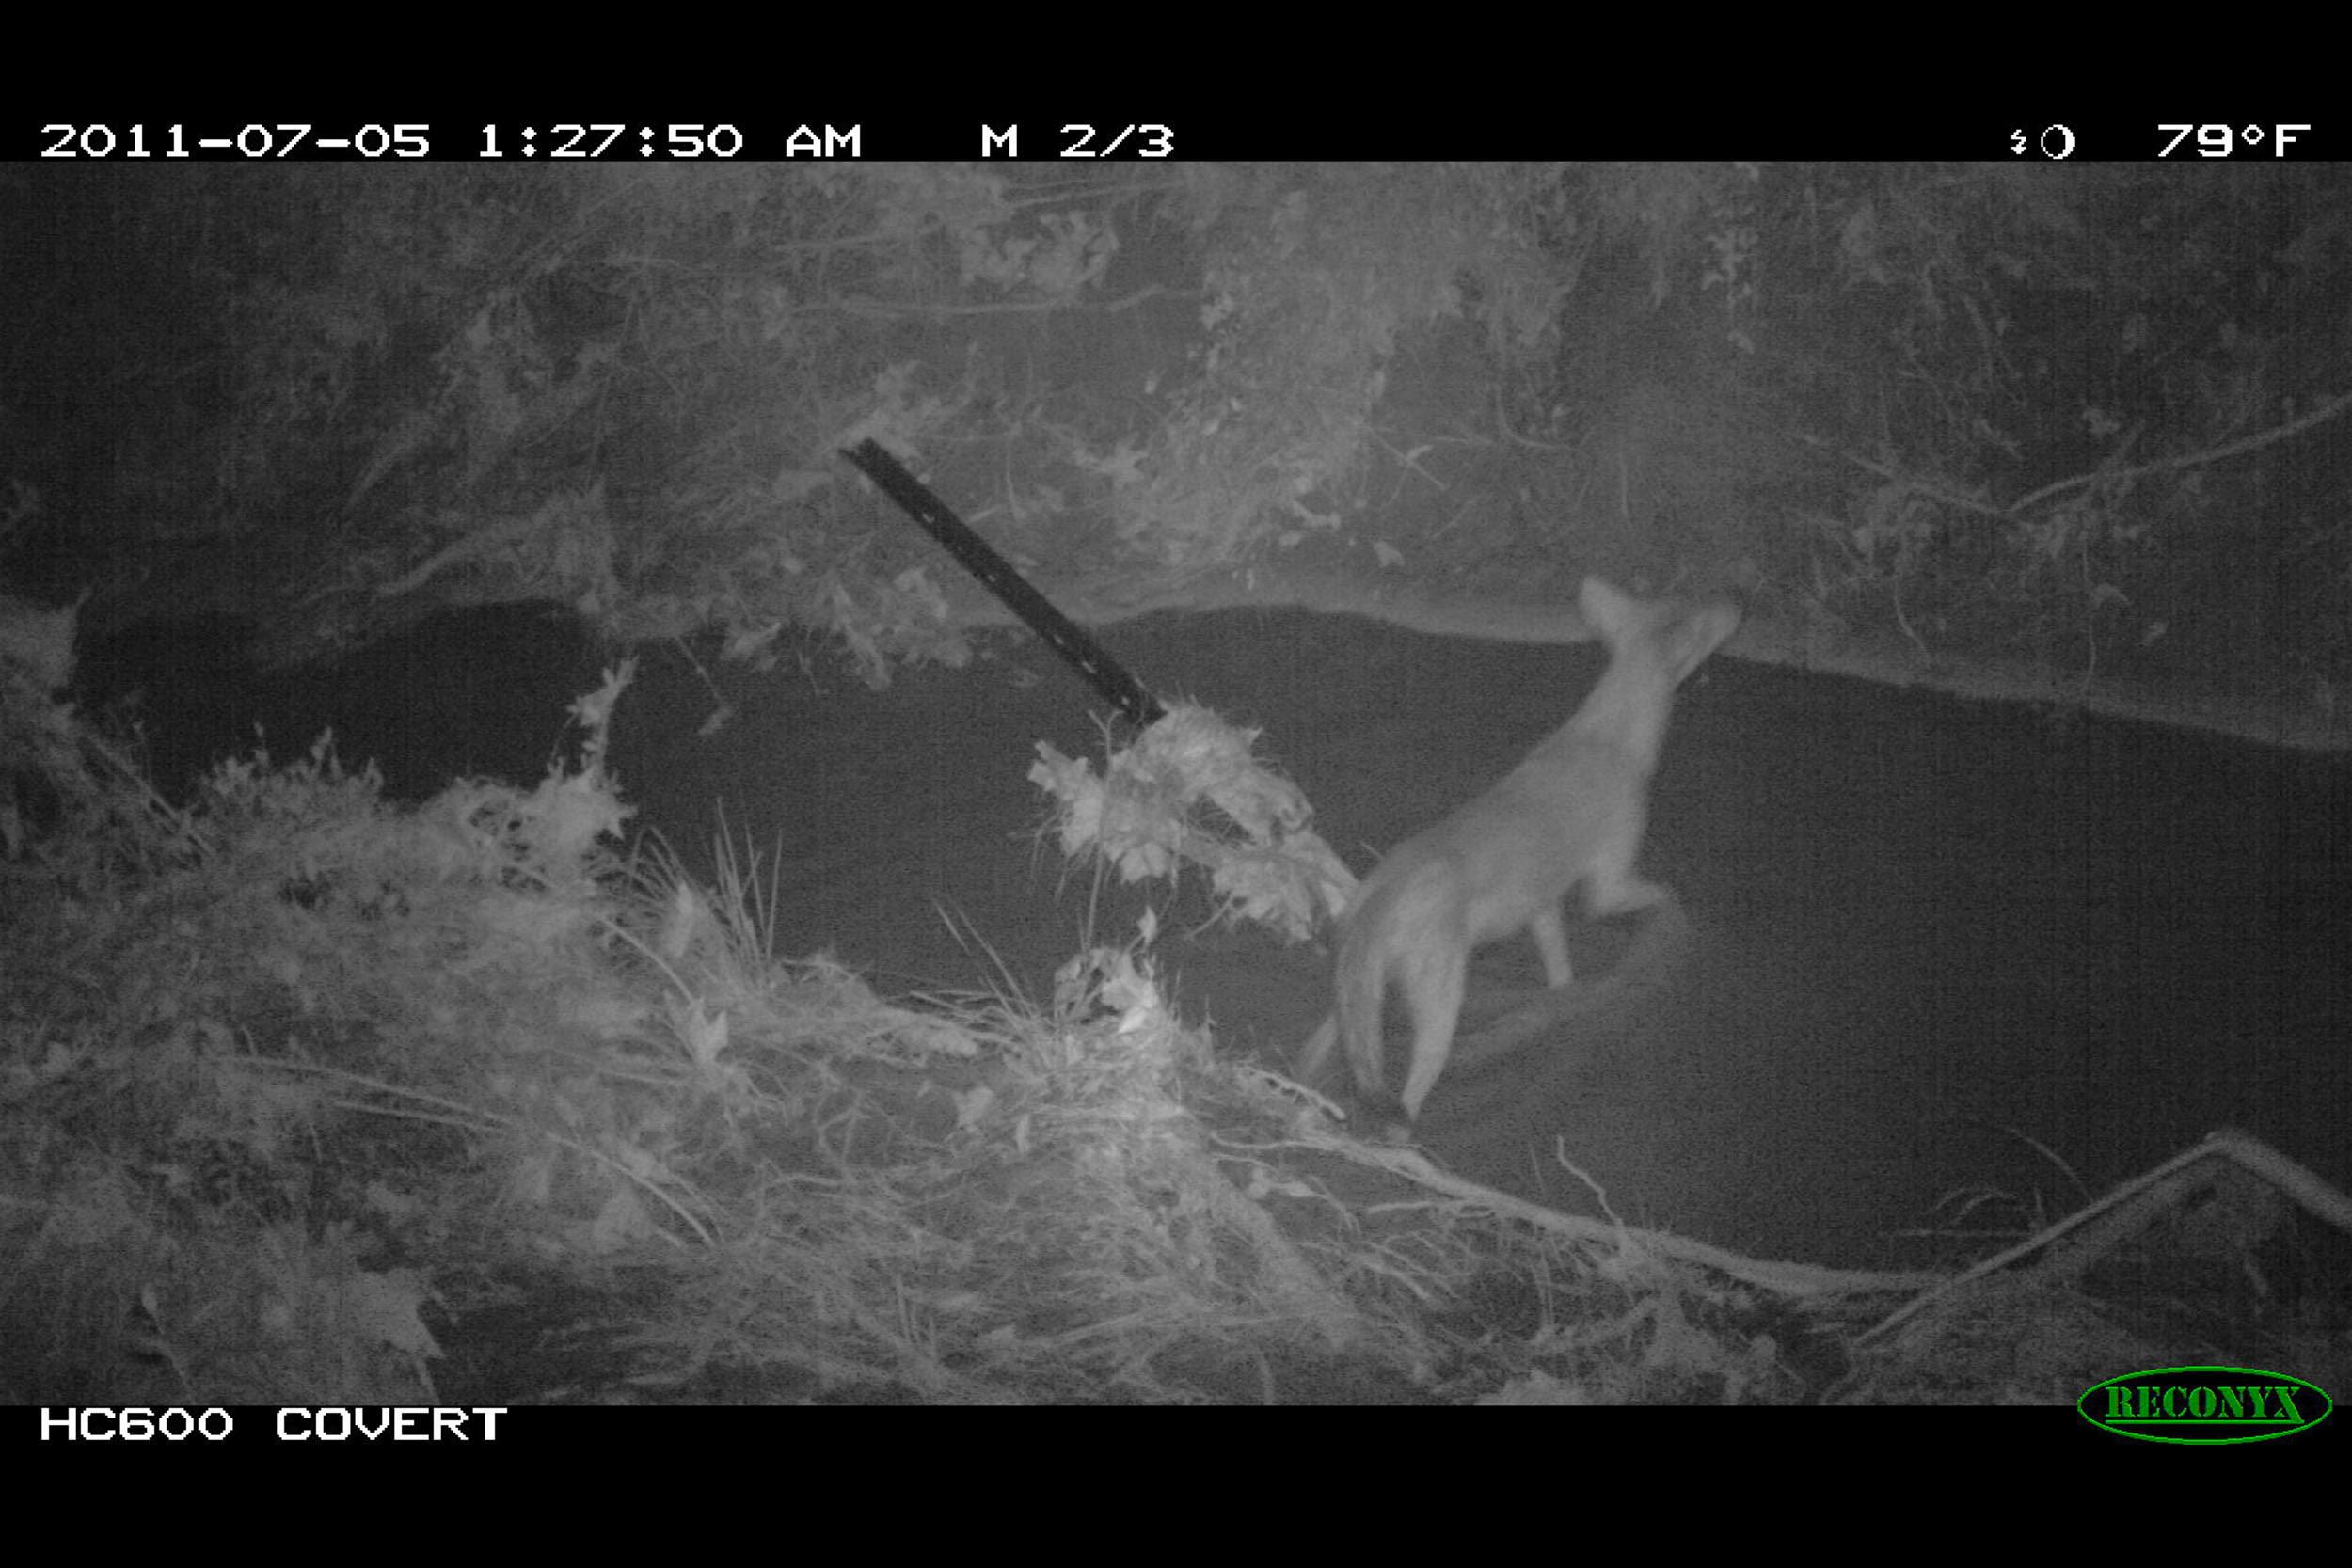 Coyote (Canis latrans) - The presence of upper level predators such as coyotes, bobcats, and owls suggests that numerous forage species are present in sufficient numbers to support the resident carnivores' diet.